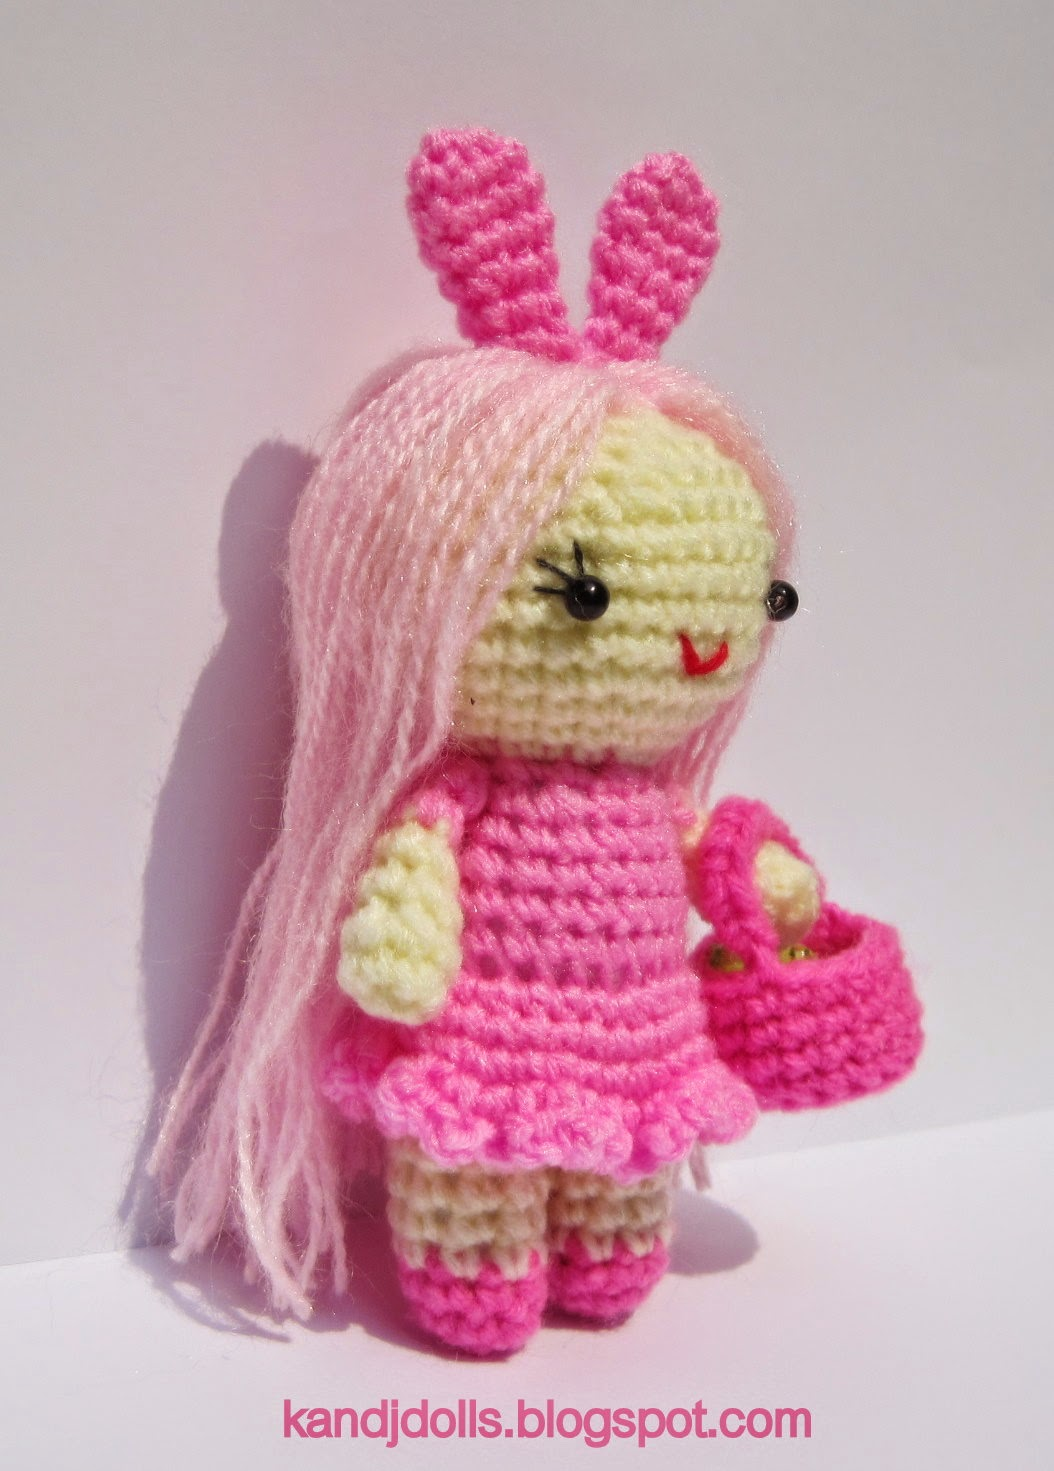 Crochet Pattern Human Doll : 2000 Free Amigurumi Patterns: Looking for Amigurumi Patterns